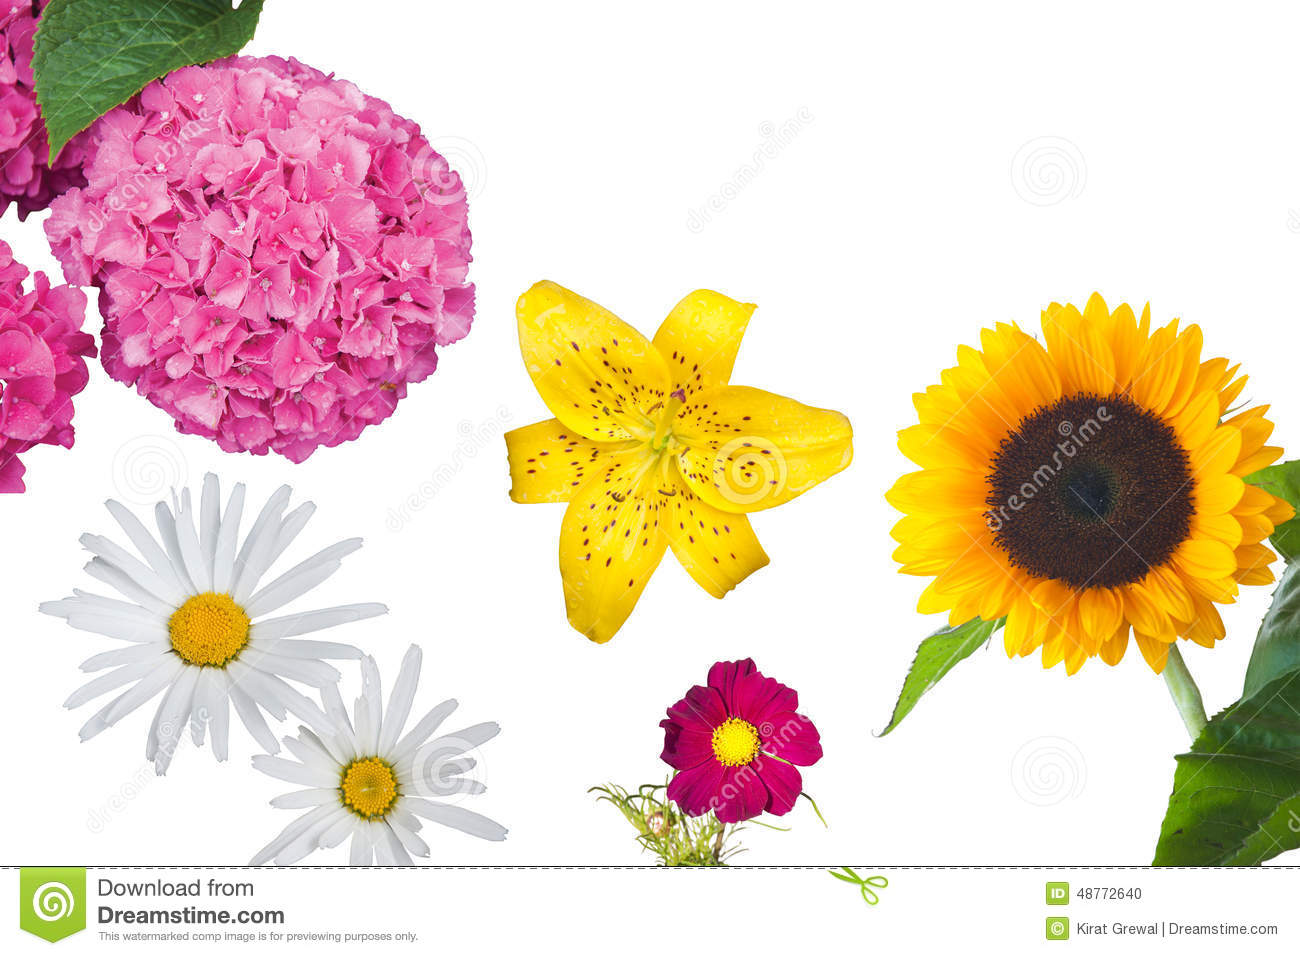 Hydrangea, Daisies, A Yellow Tiger Lily, A Magenta Anemone.